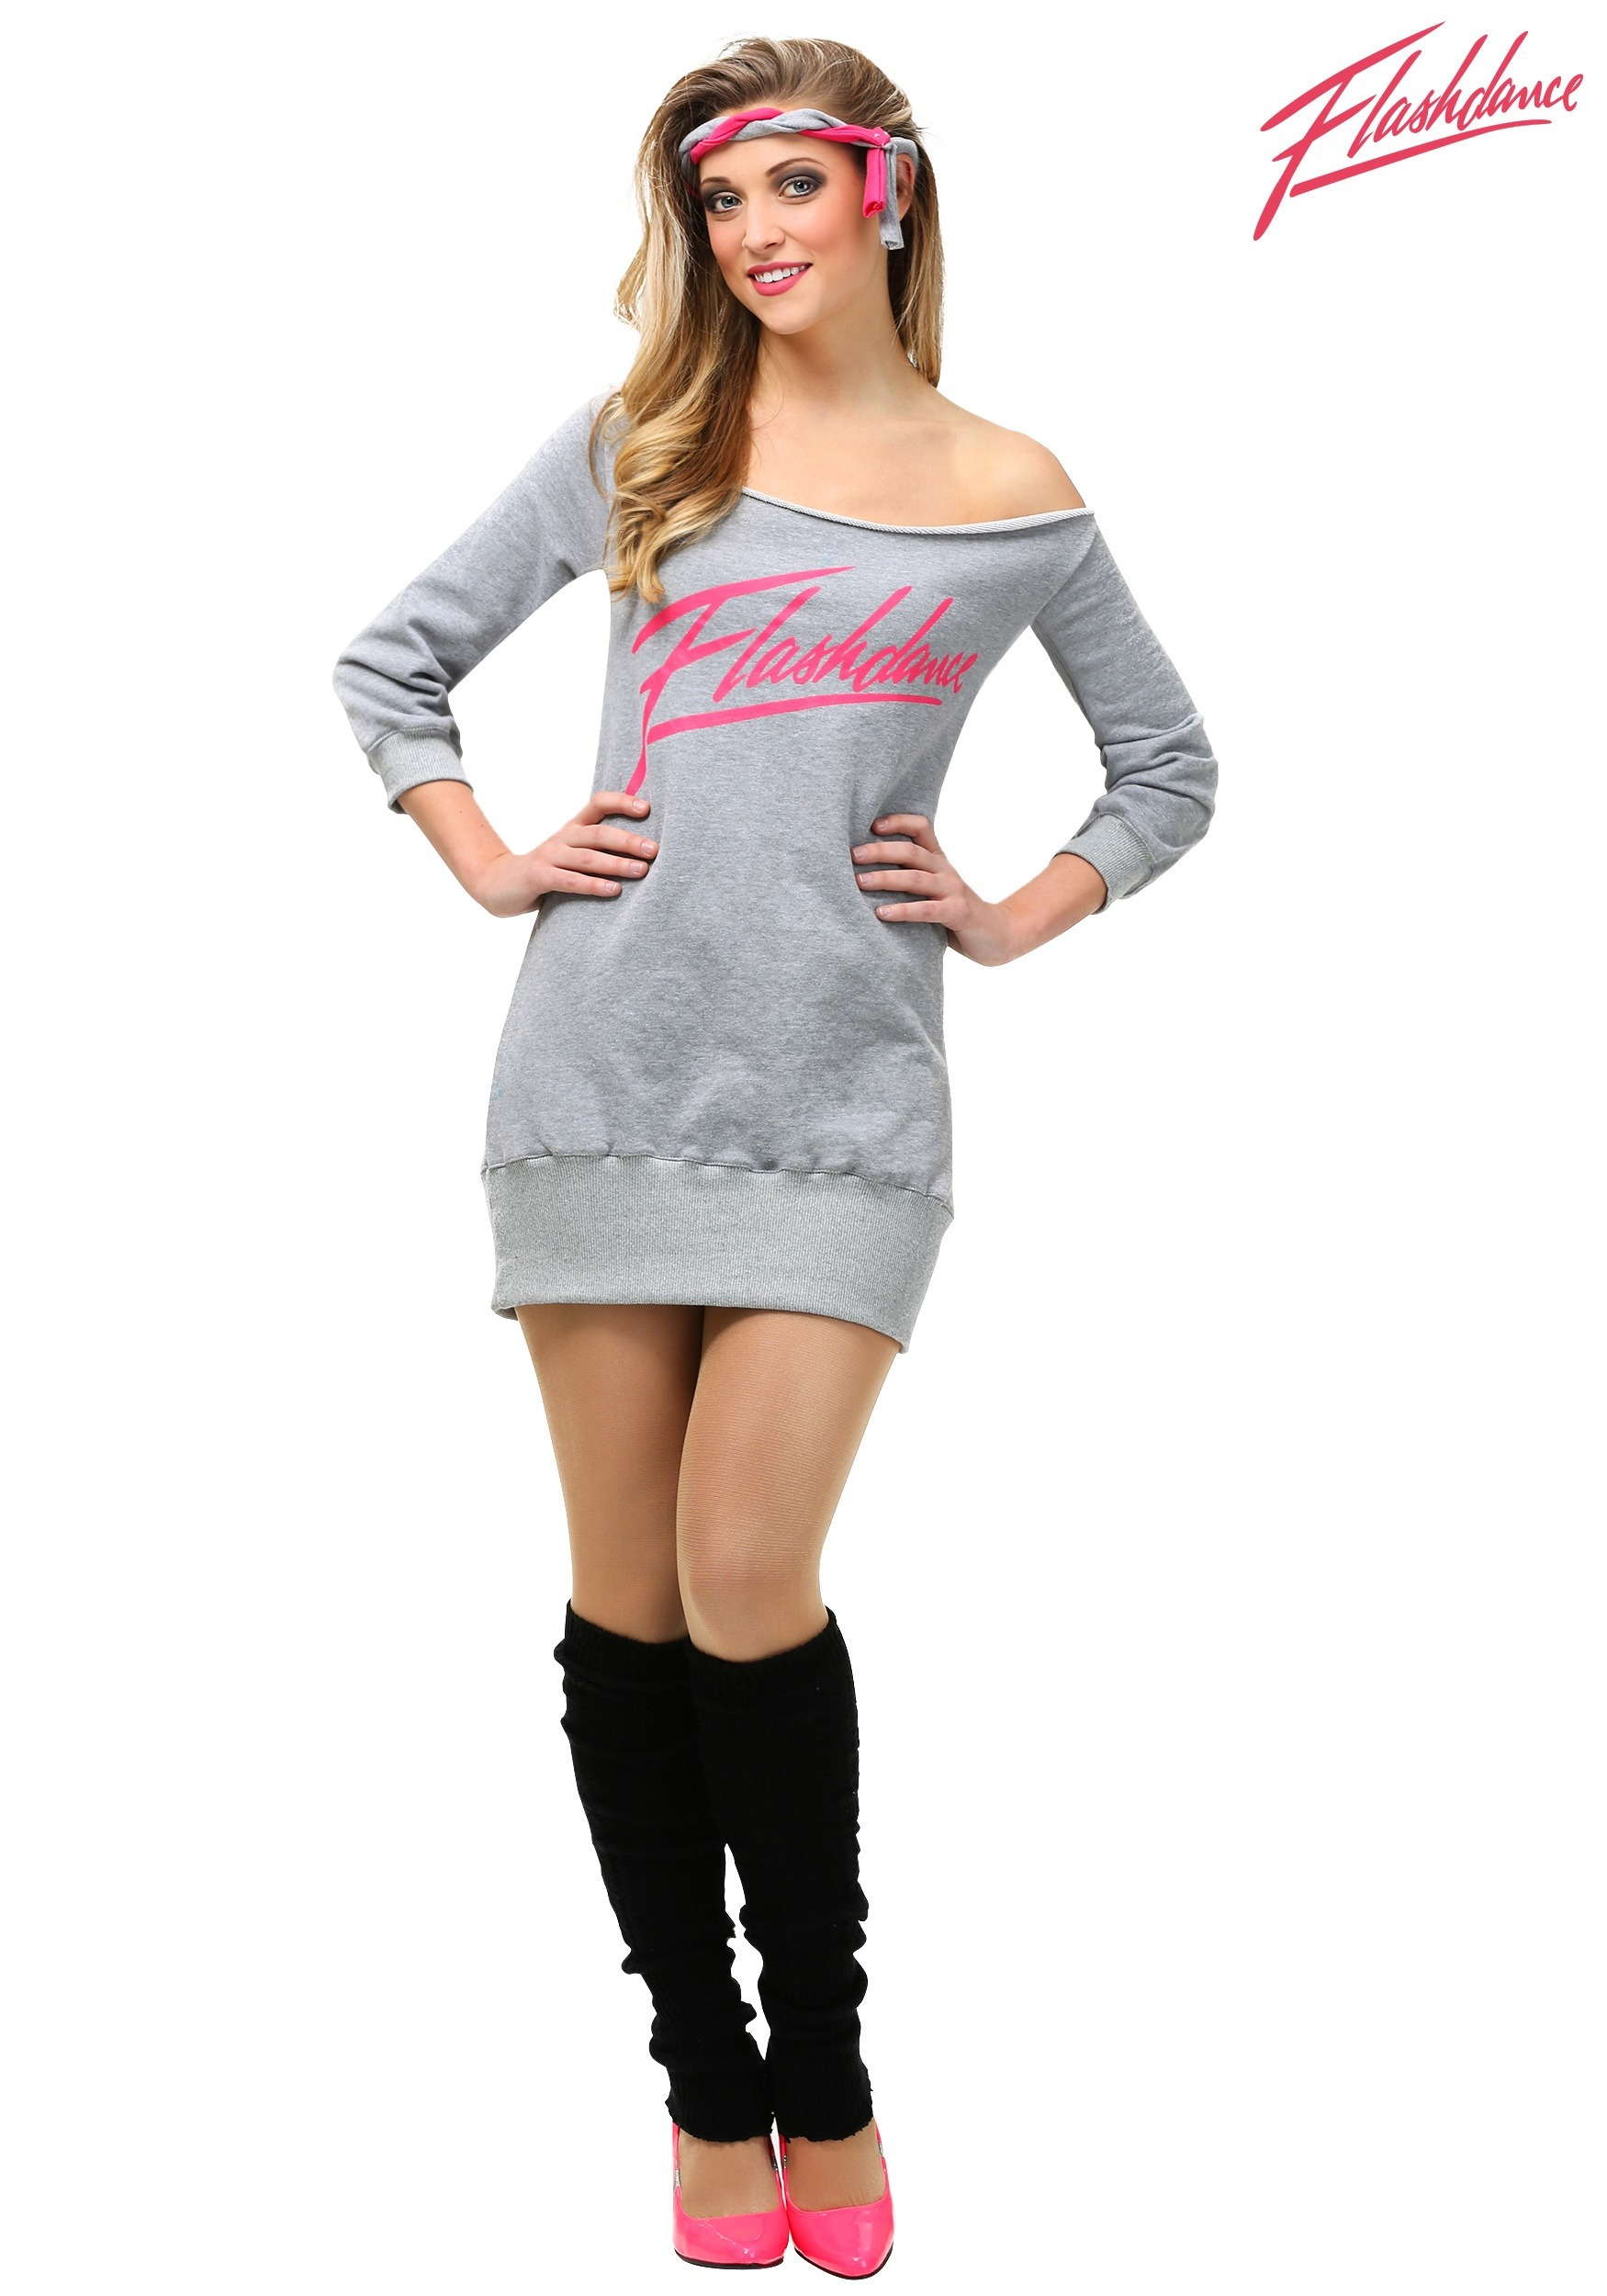 Women's Plus Size Flashdance Costume